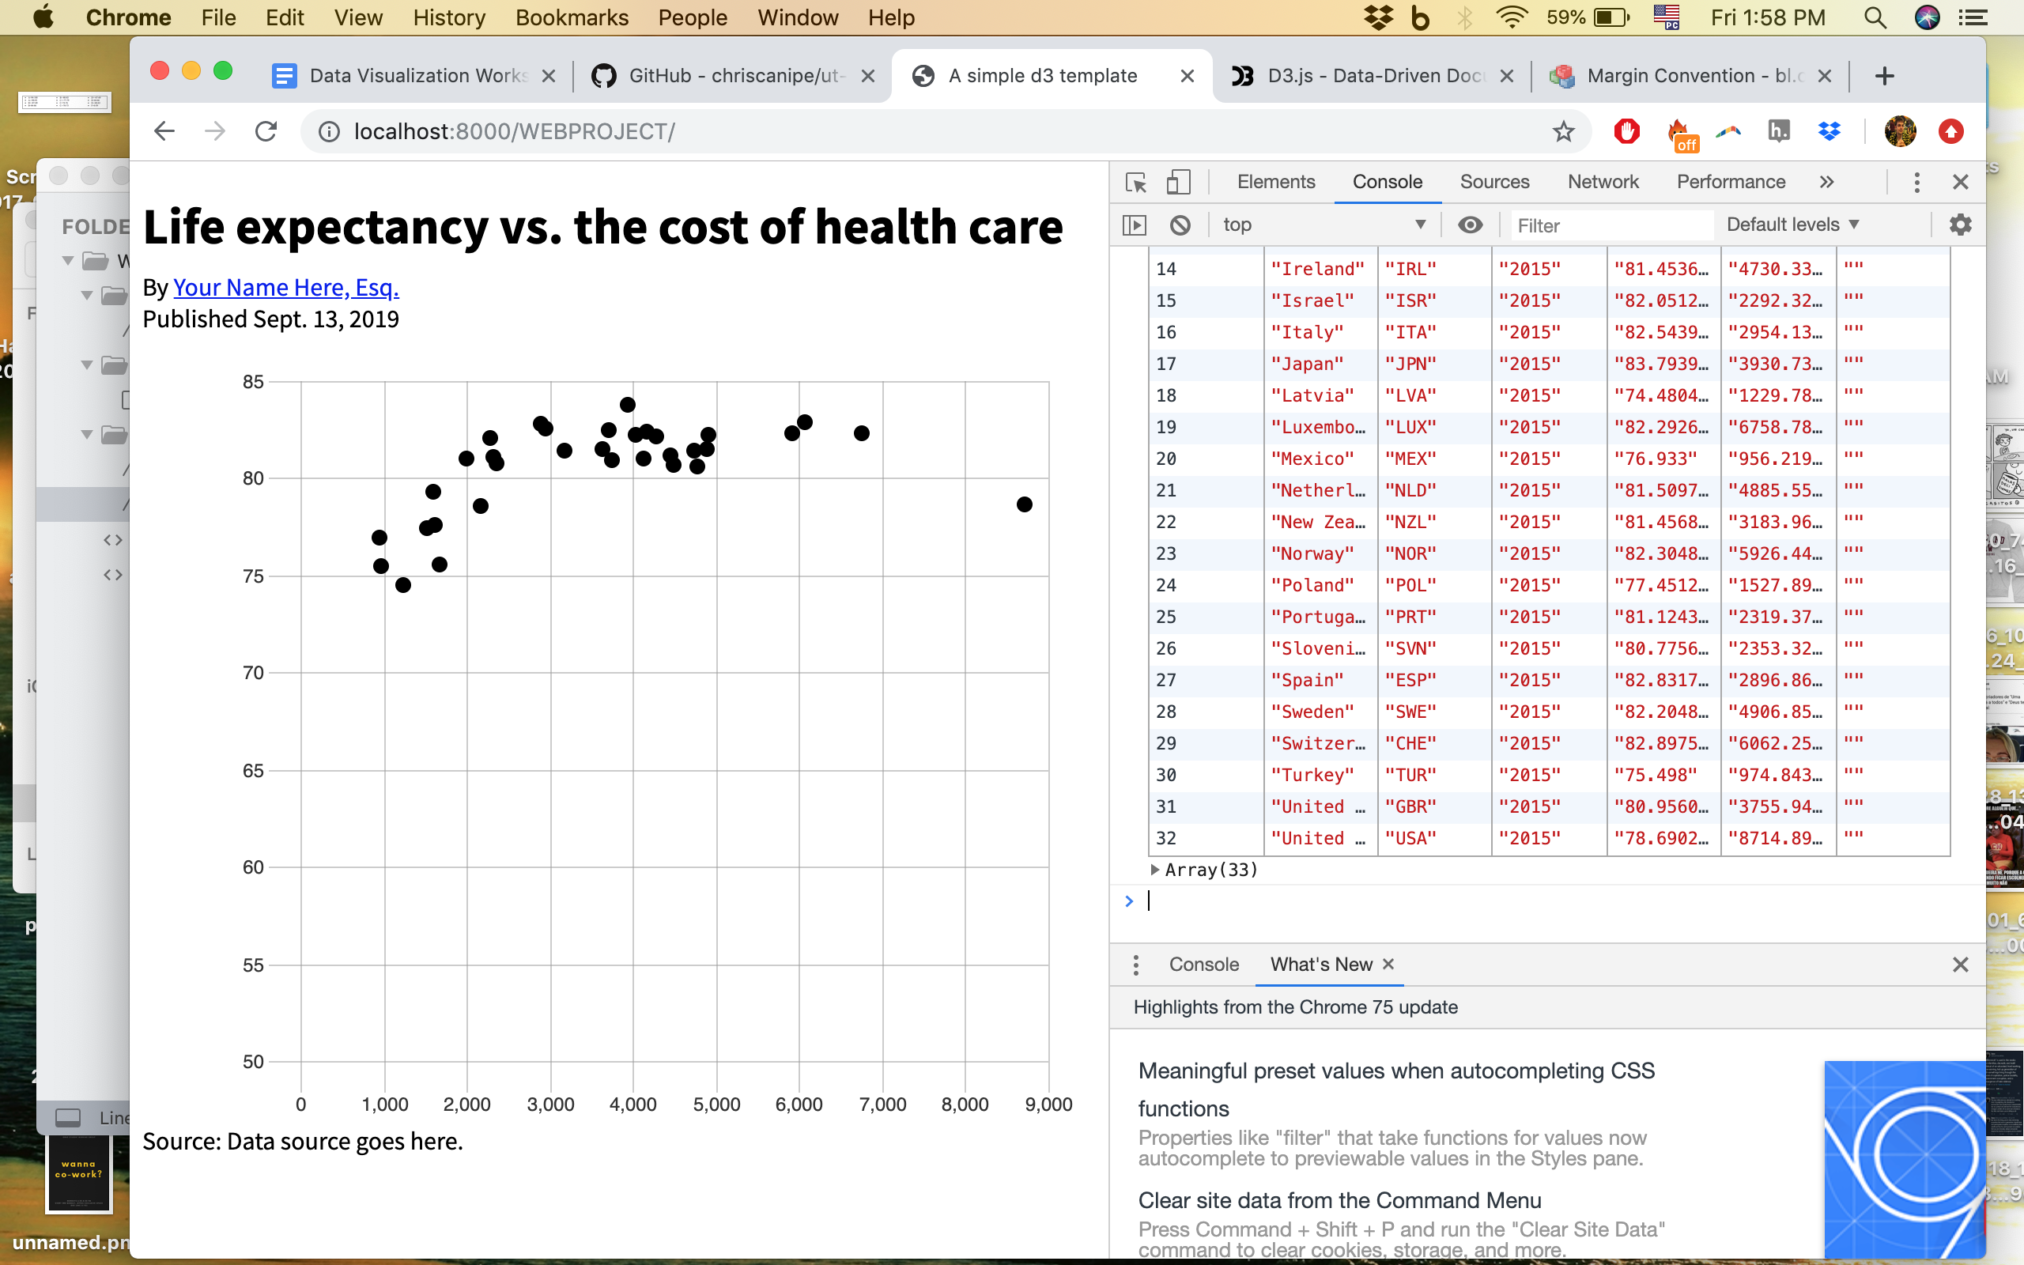 A scatterplot of life expectancy versus the cost of healthcare with dots spread throughout